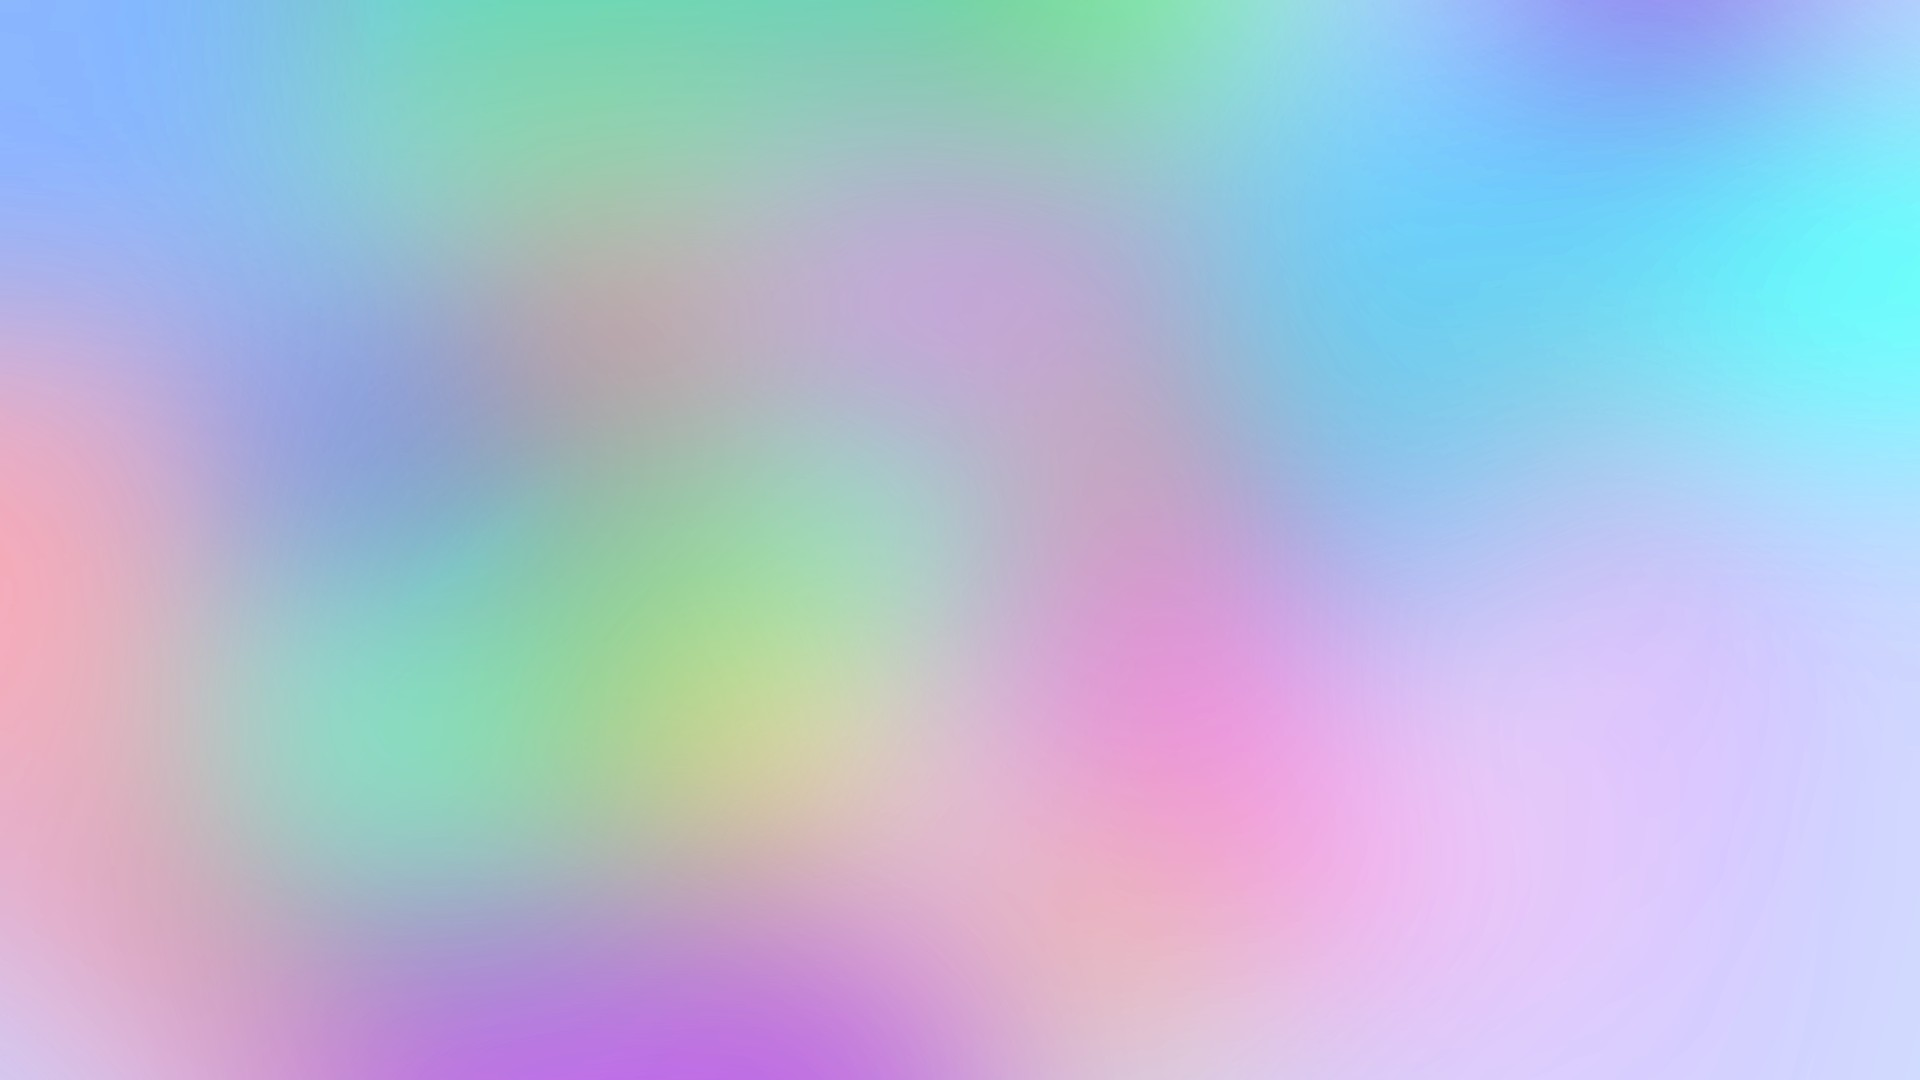 63 Pastel Backgrounds 183 ① Download Free Awesome High